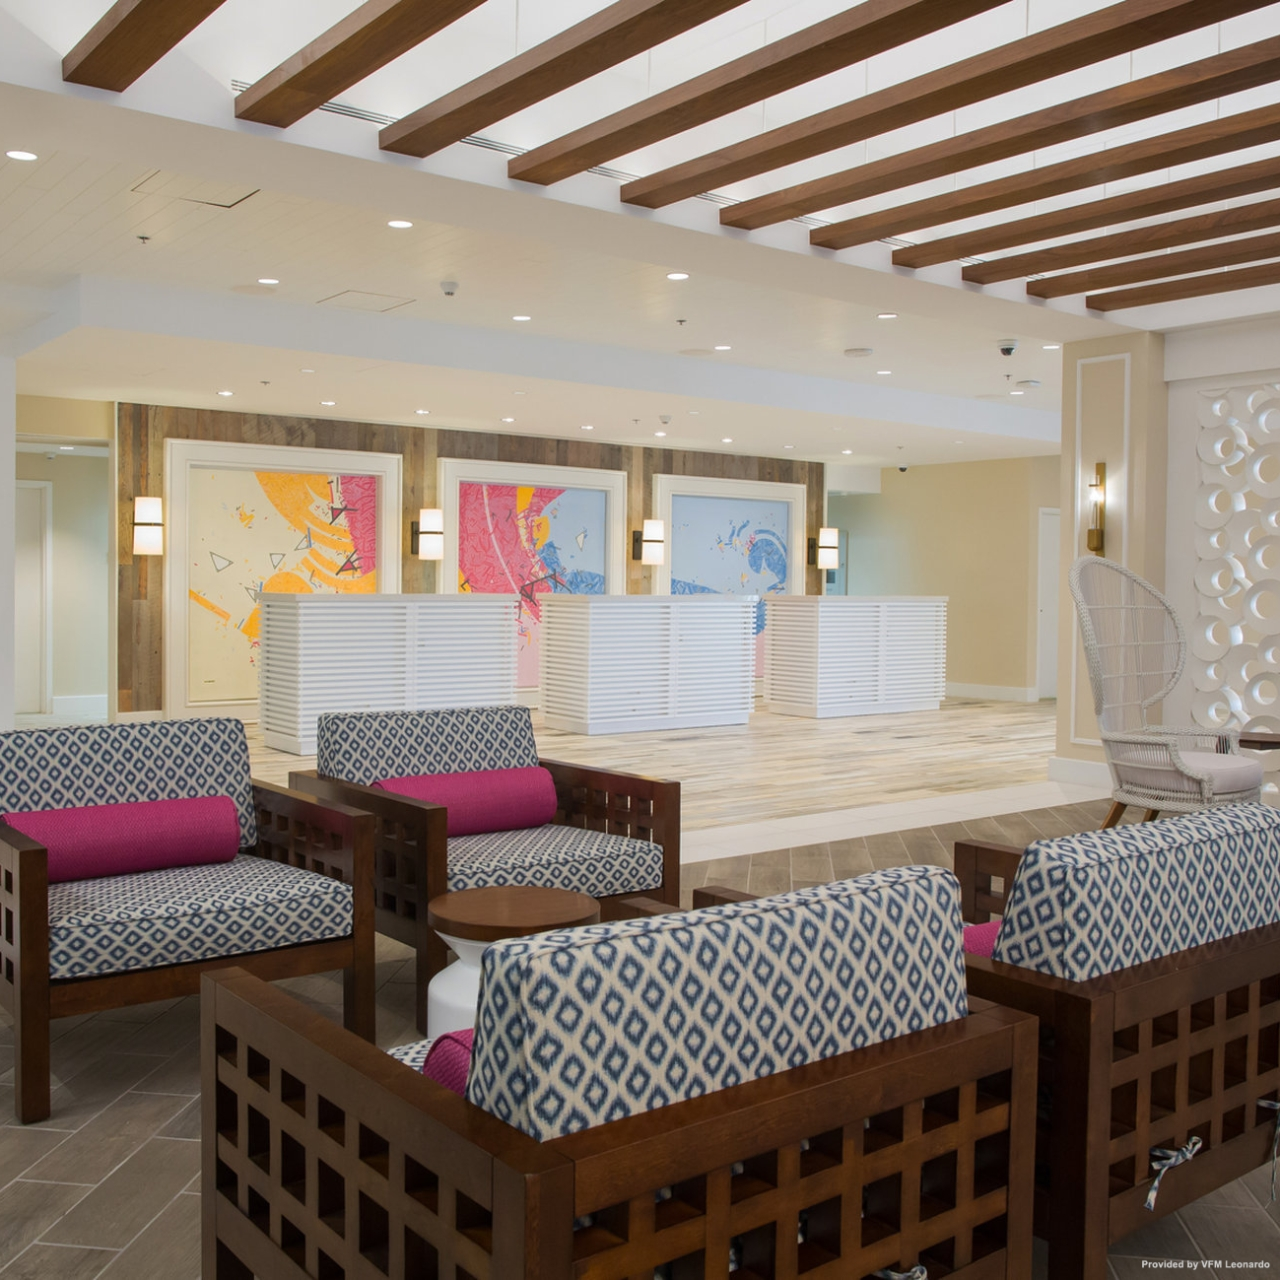 Hotel Warwick Paradise Island Bahamas All Inclusive Bahamas At Hrs With Free Services